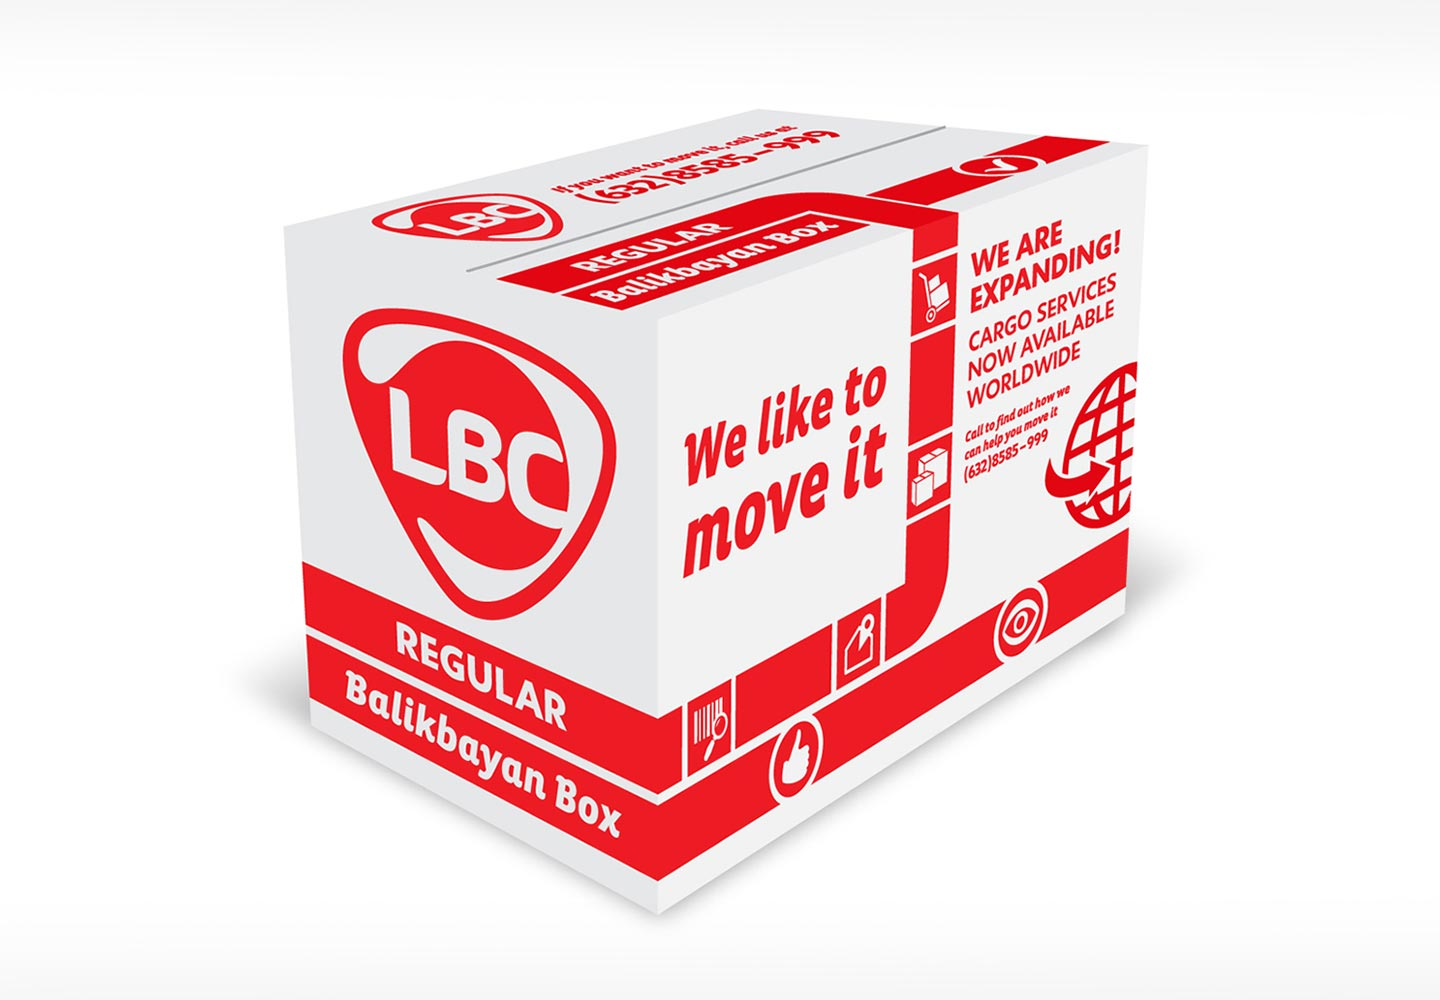 Brand Consultancy in Logistics Industry. Packaging design for LBC.